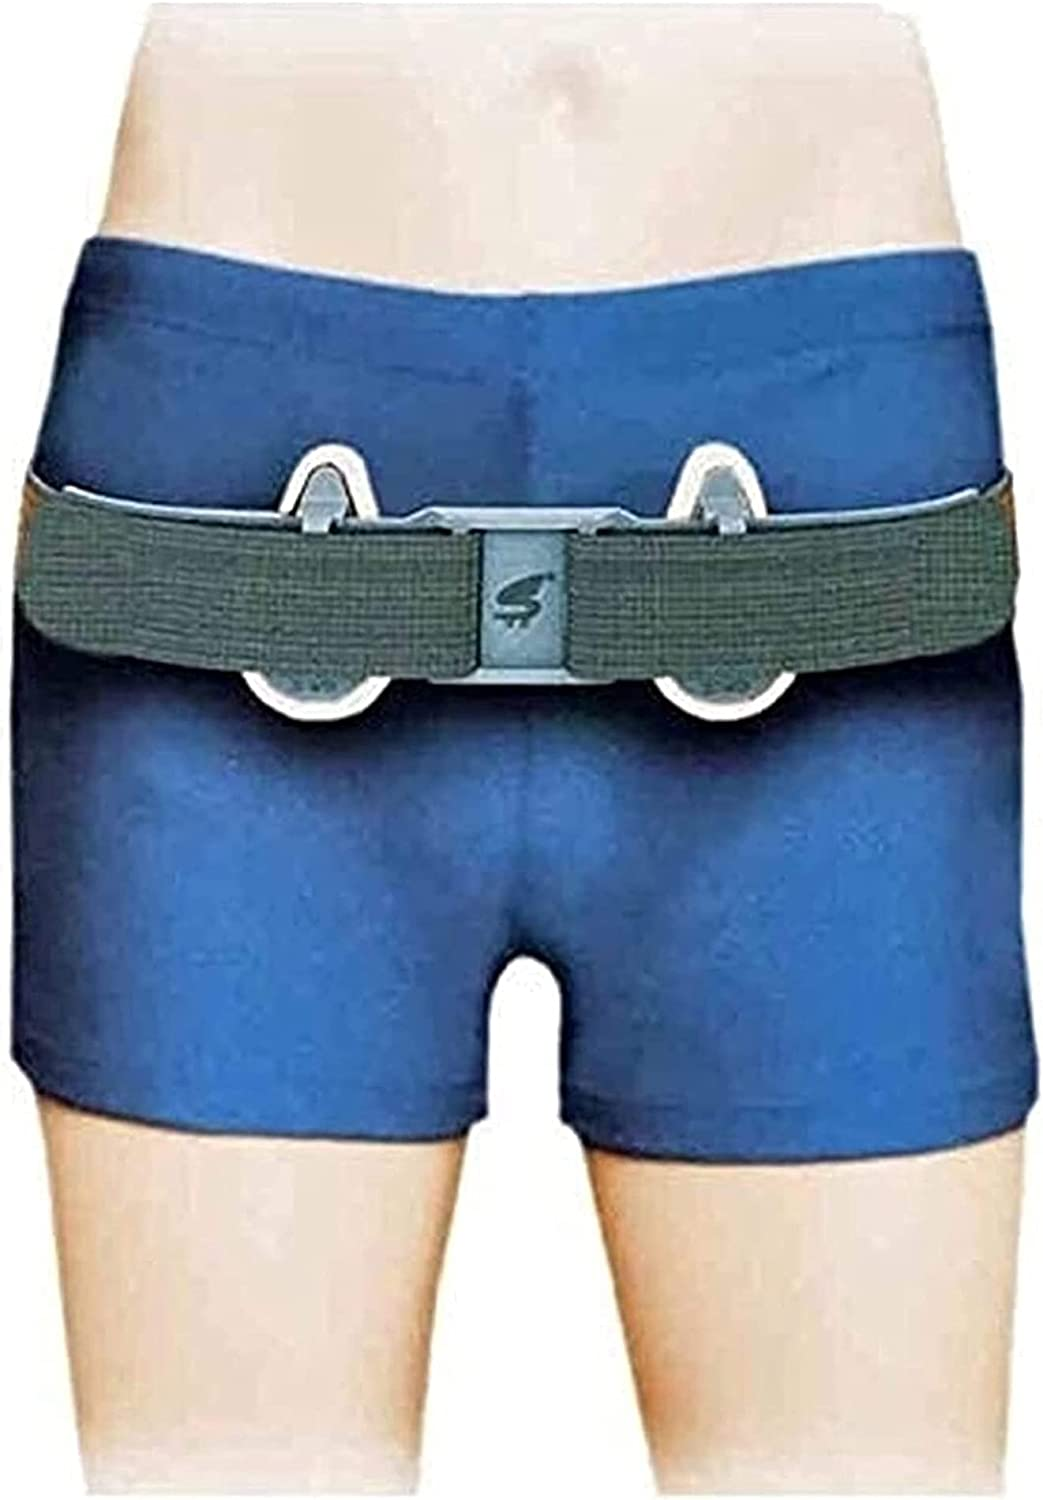 lovediyxihe Ranking TOP13 Inguinal Groin Hernia Belt for Support Hernias New product! New type